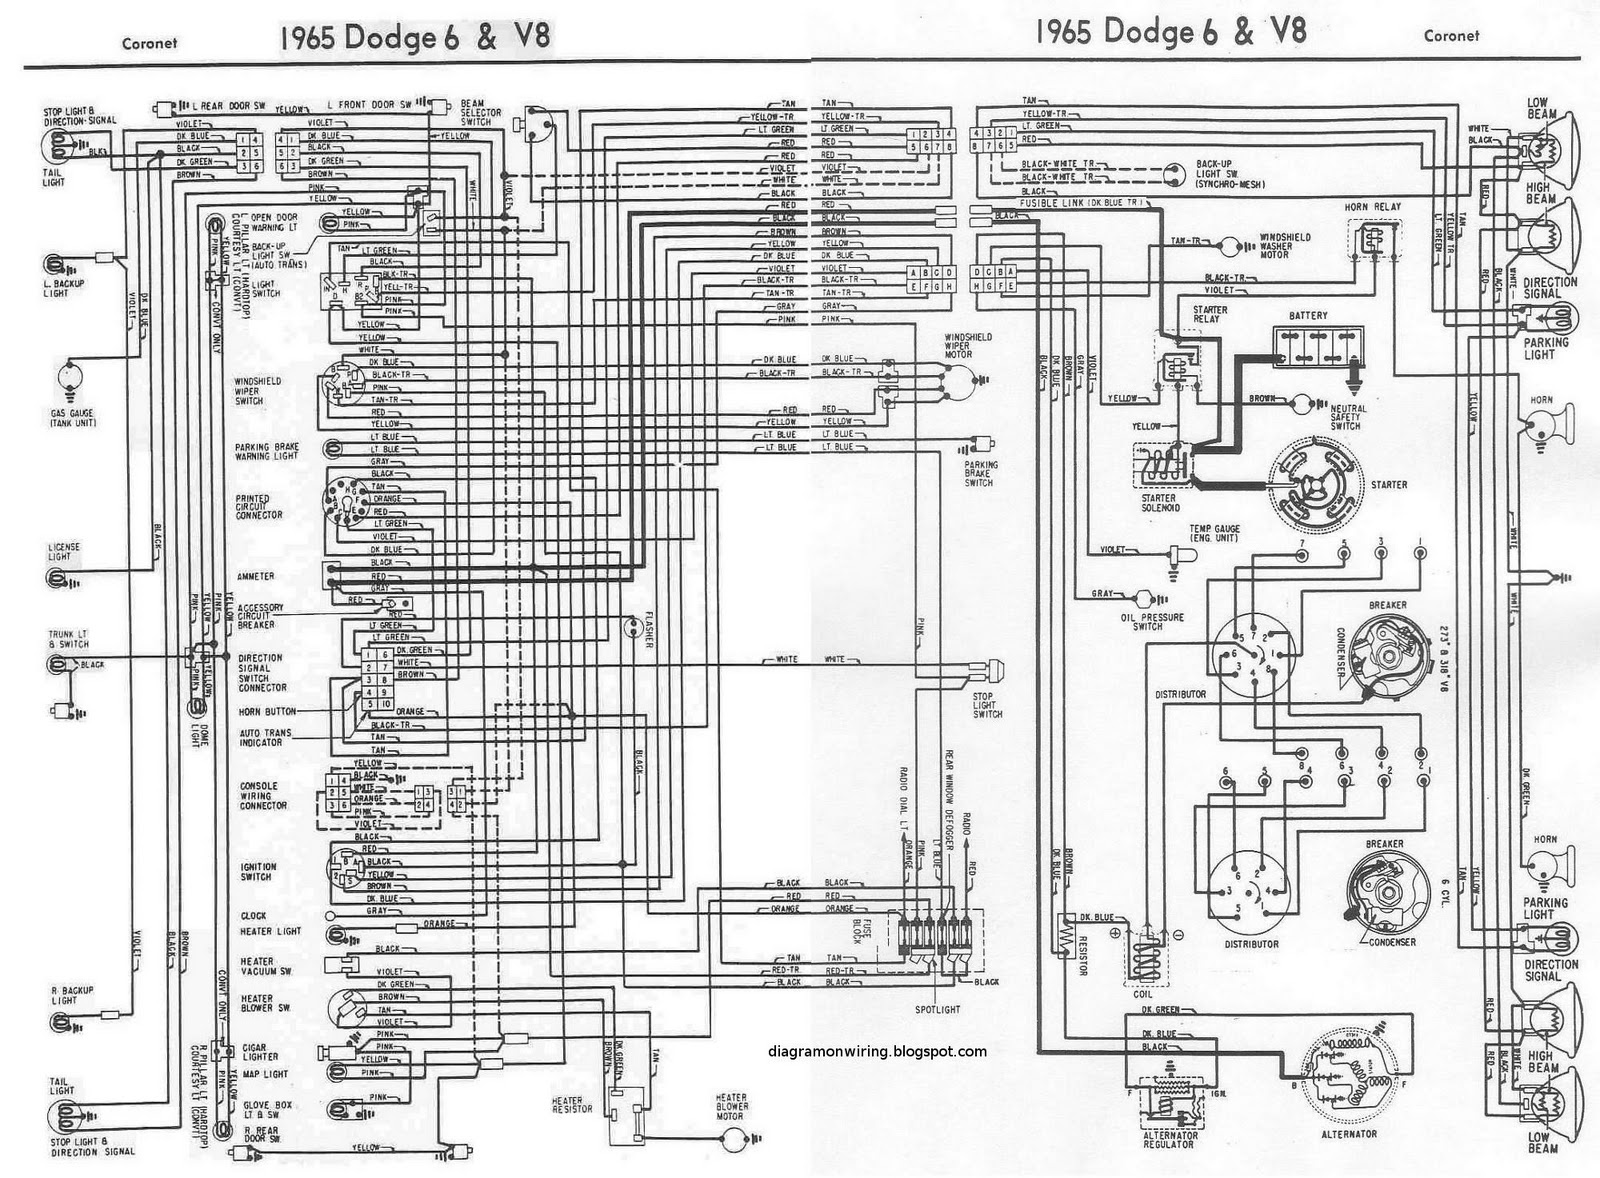 Dodge demon wiring diagrams library of wiring diagrams u ti com jpg  1600x1178 1972 dodge dart